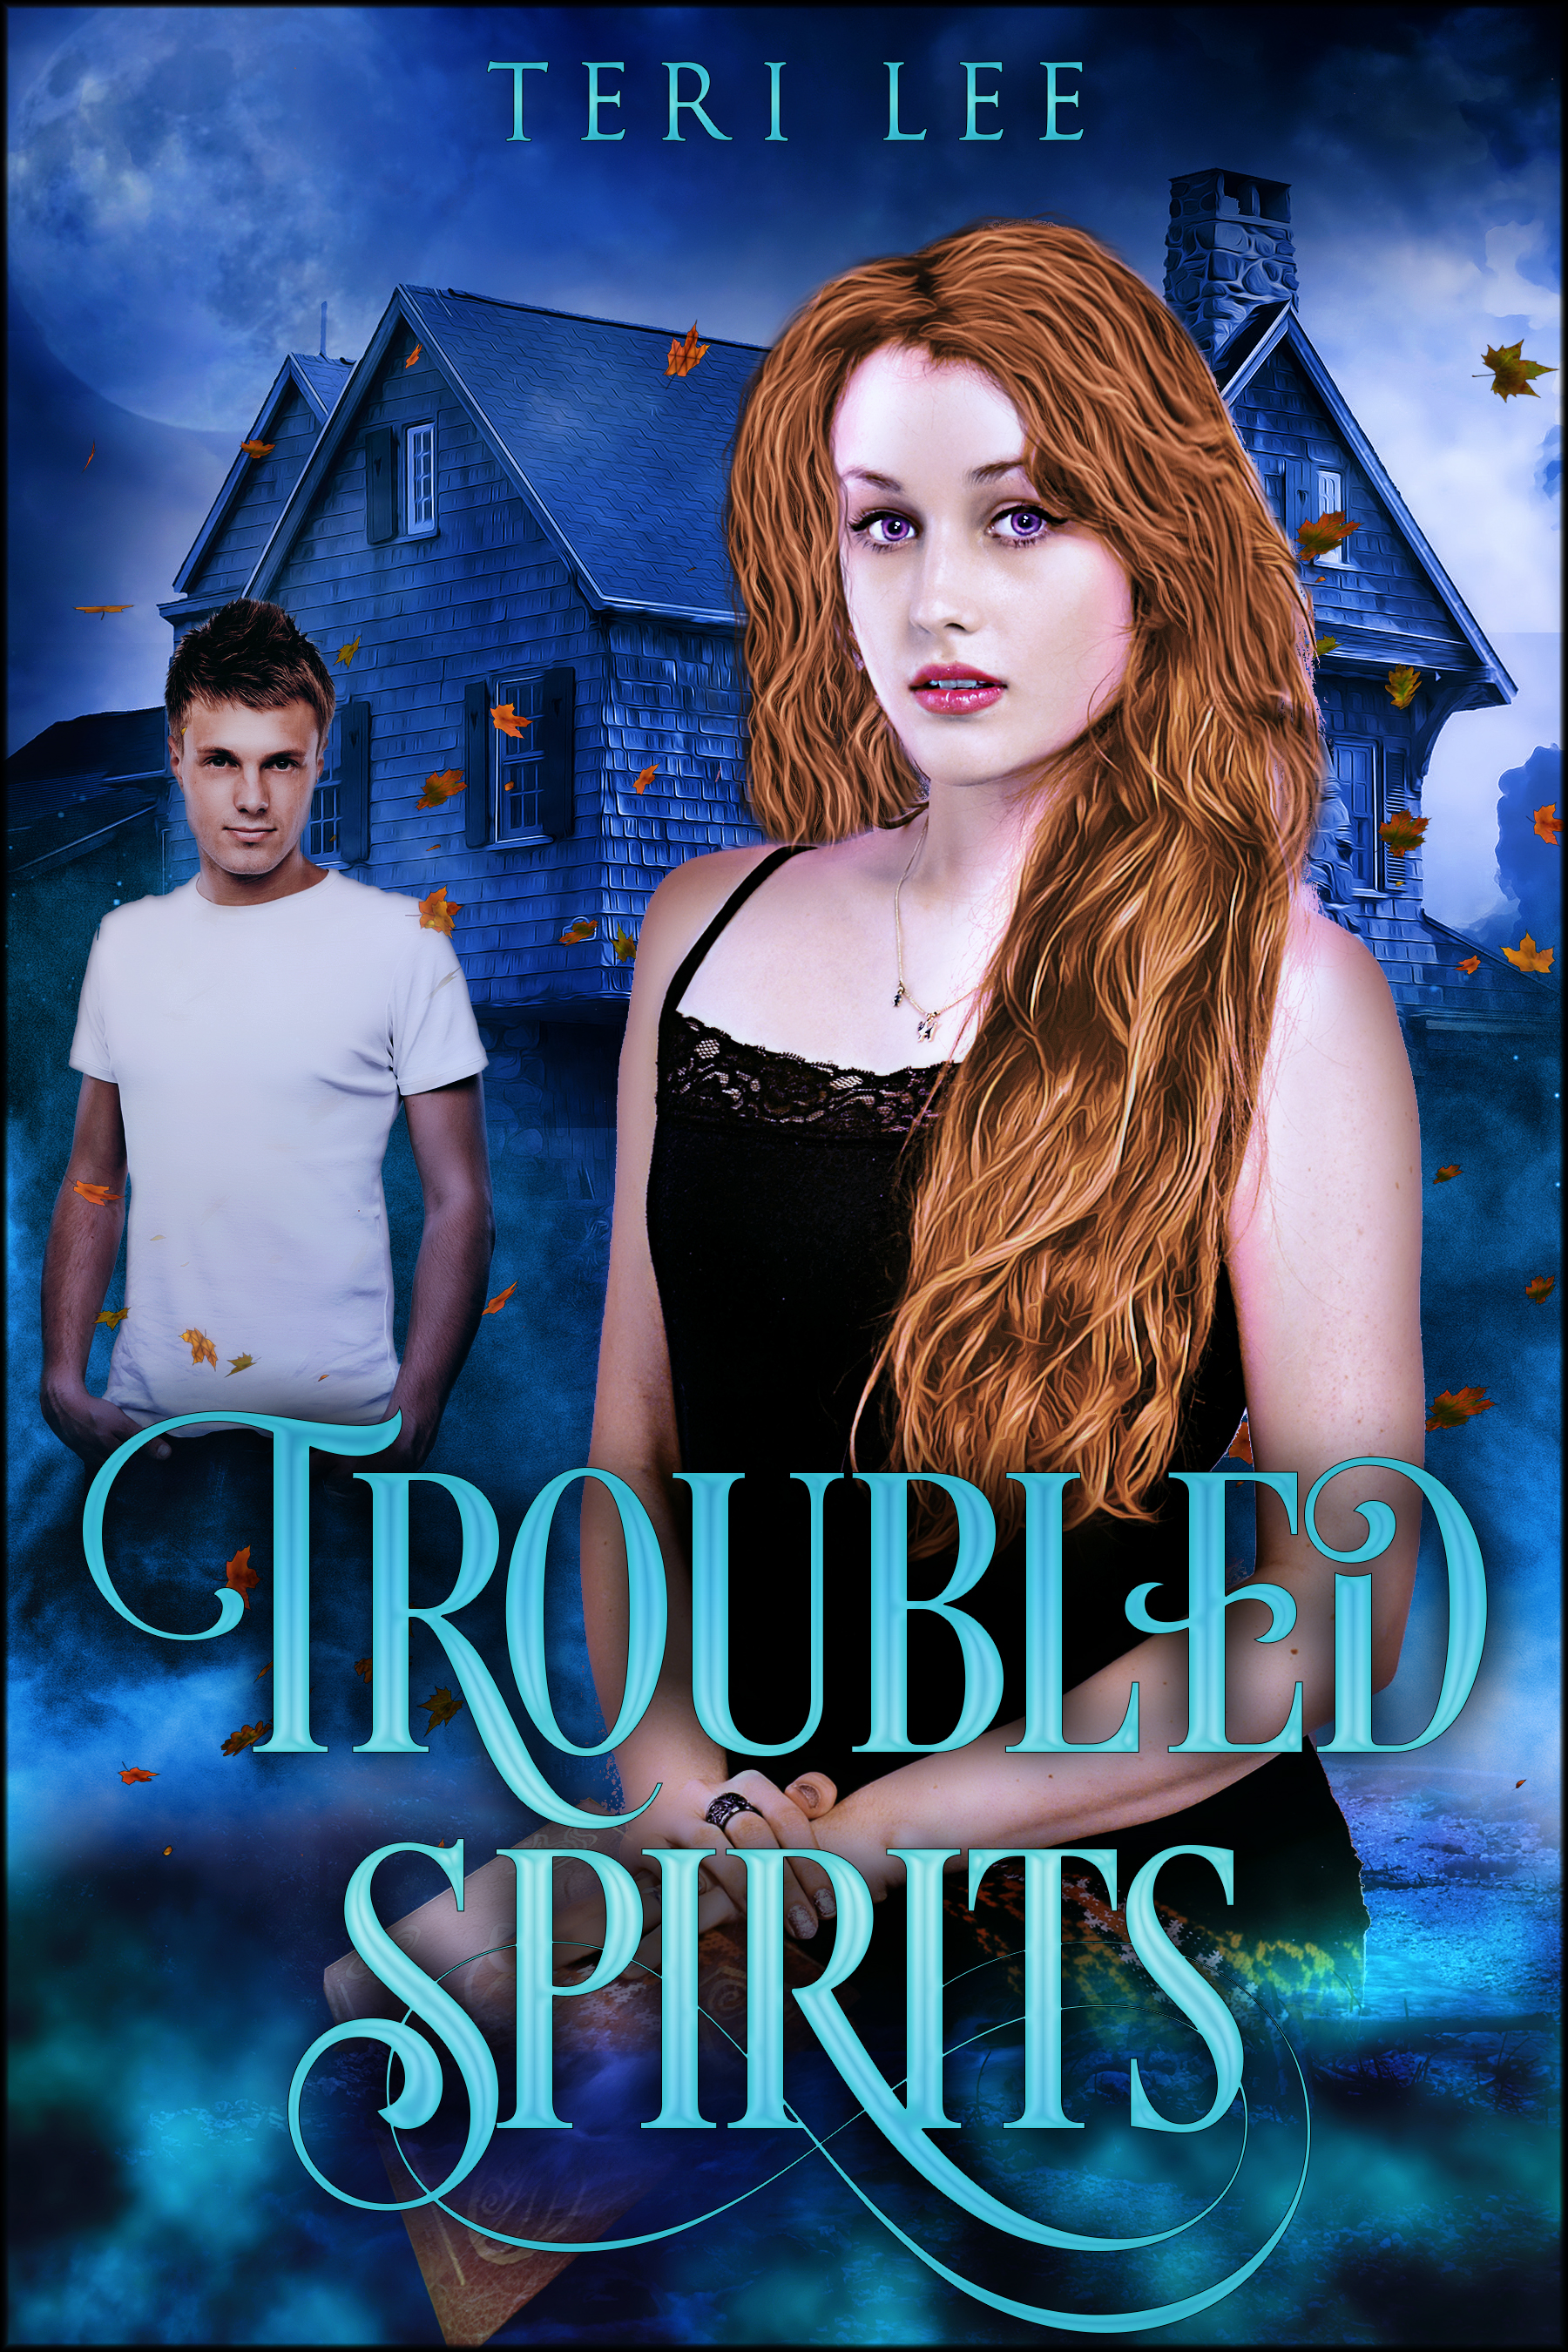 Teri Lee - Troubled Spirits - c.jpg